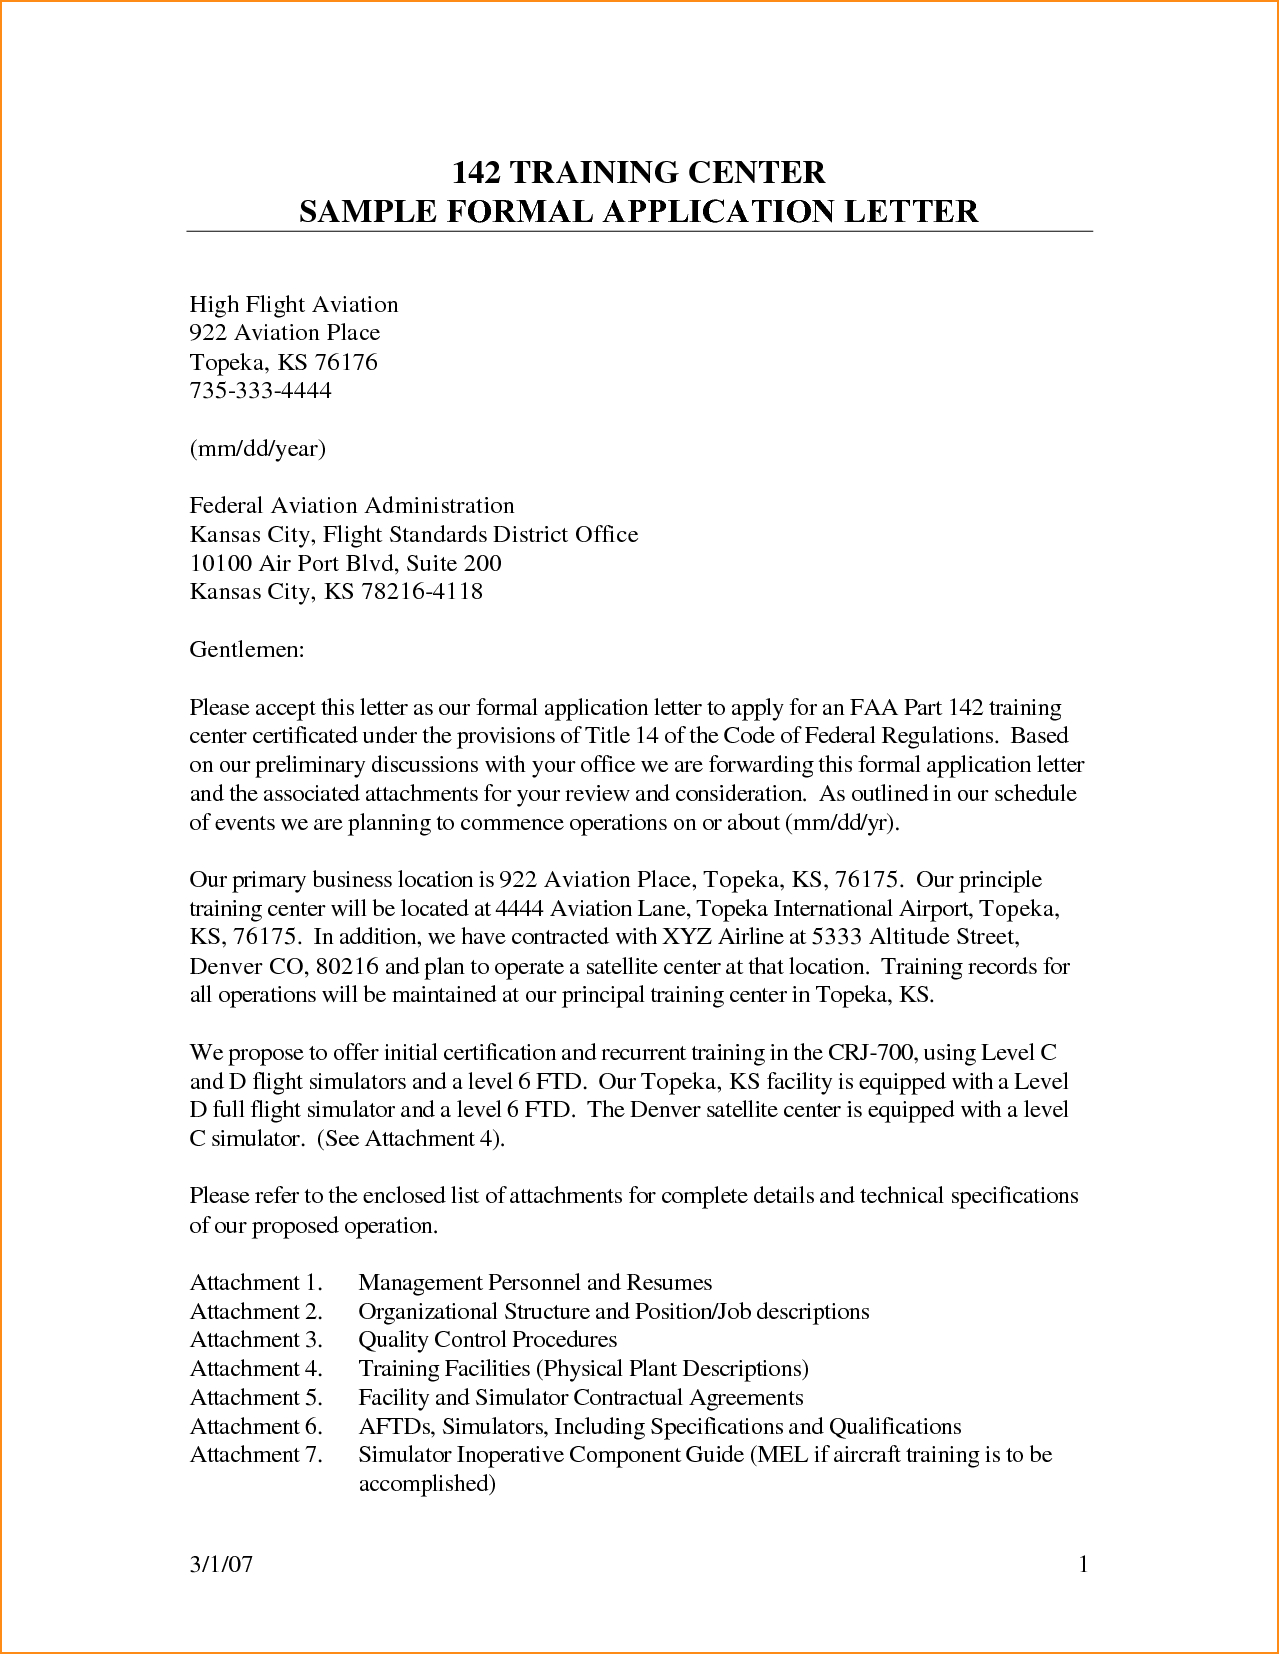 For Your Review and Consideration - Best solutions formal Letter for Job Application Pdf Gallery